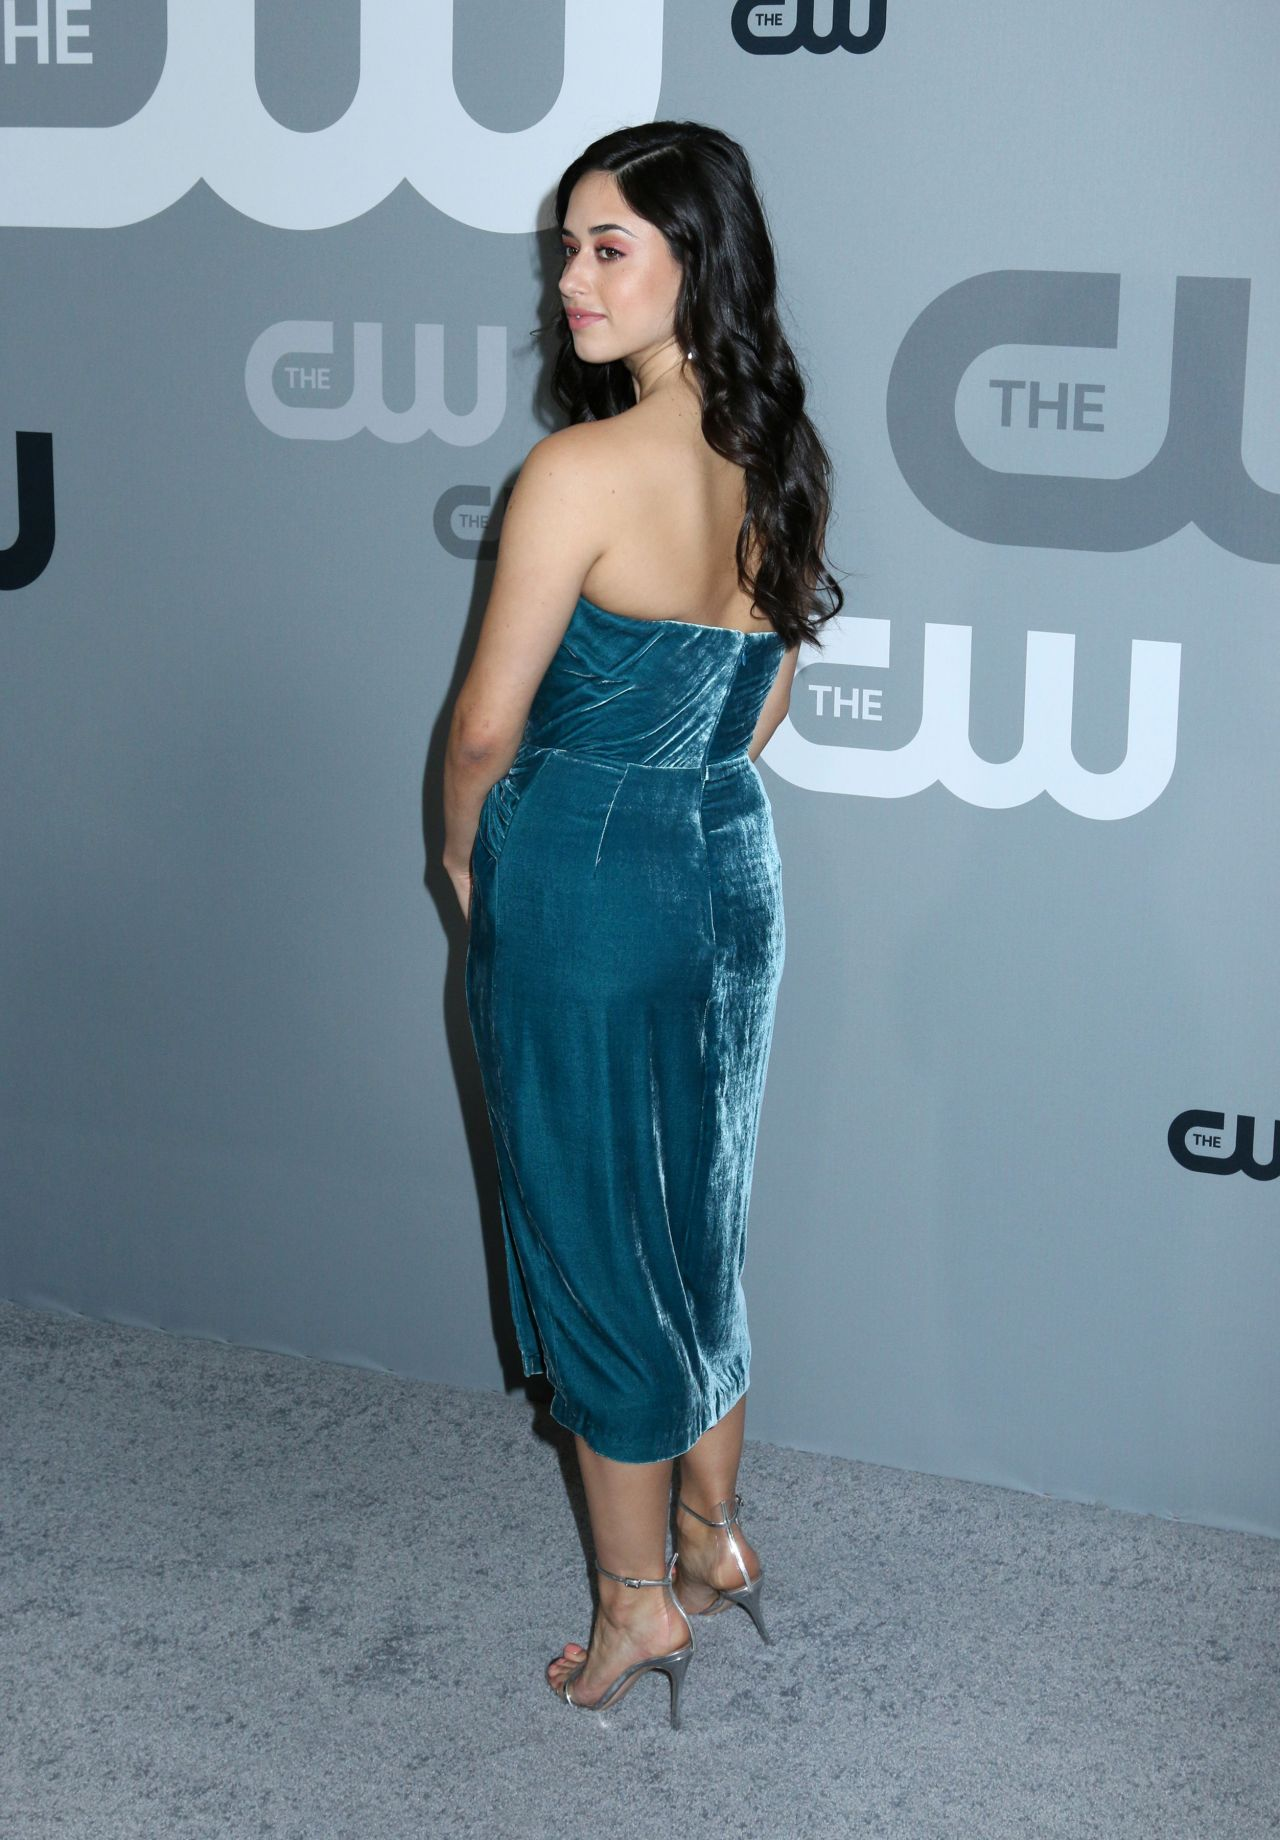 Jeanine Mason Cw Network Upfront Presentation In Nyc 05